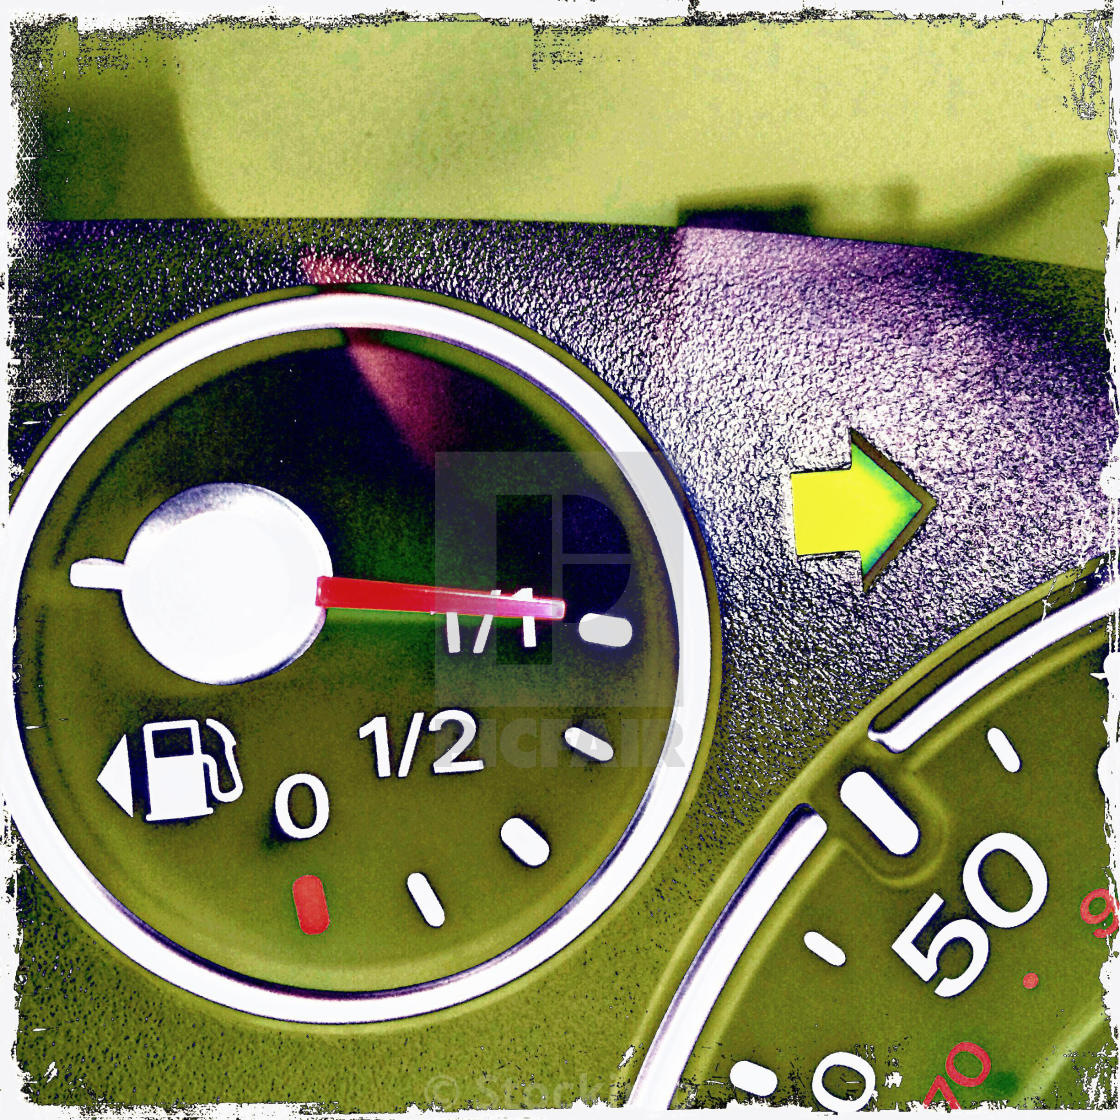 Car vehicle dashboard instruments speedometer showing fuel petrol